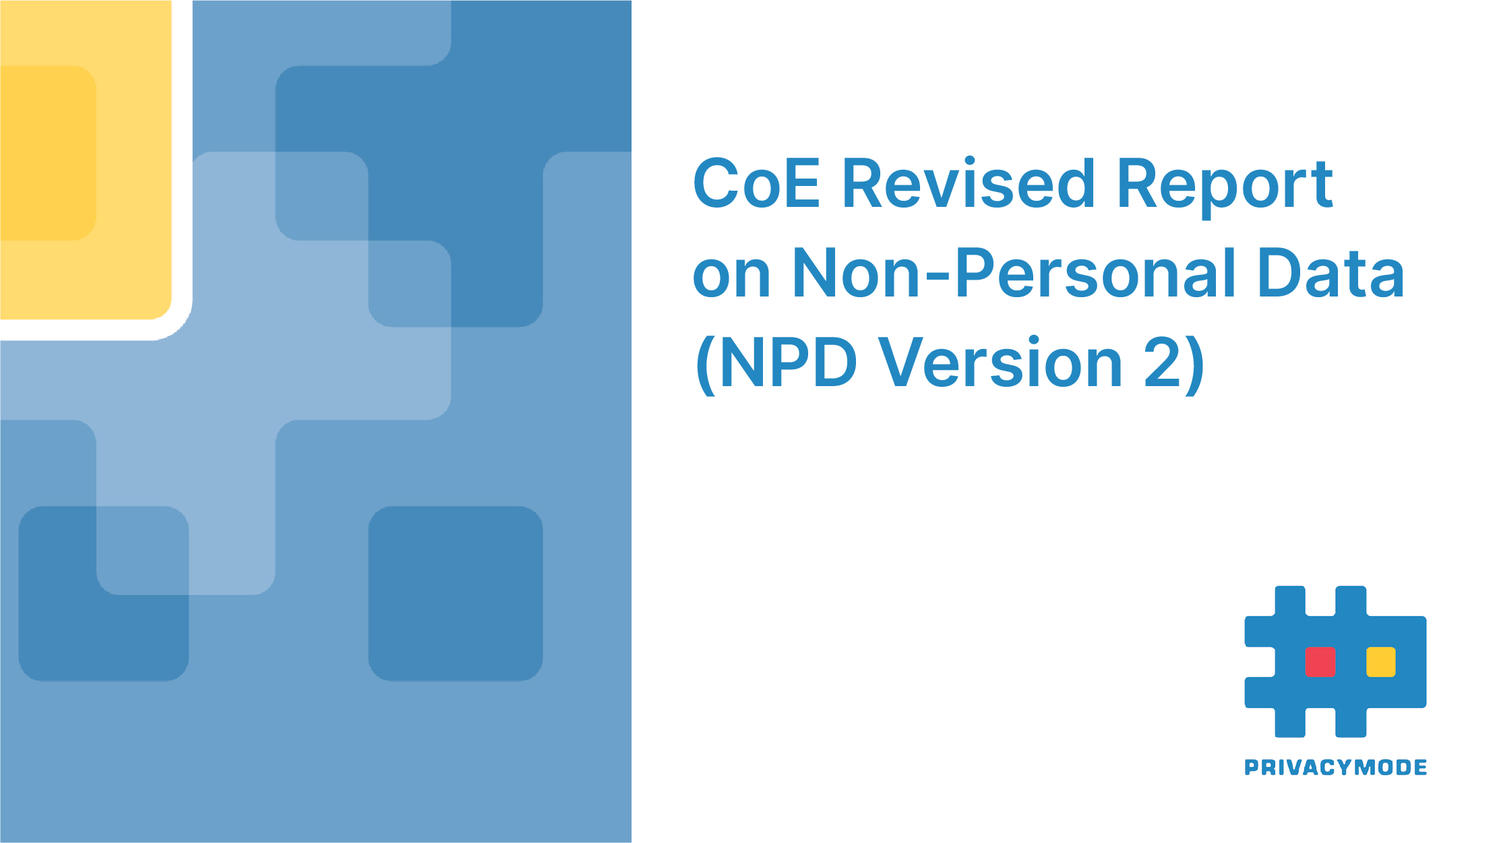 CoE Revised Report on Non-Personal Data (NPD Version 2)